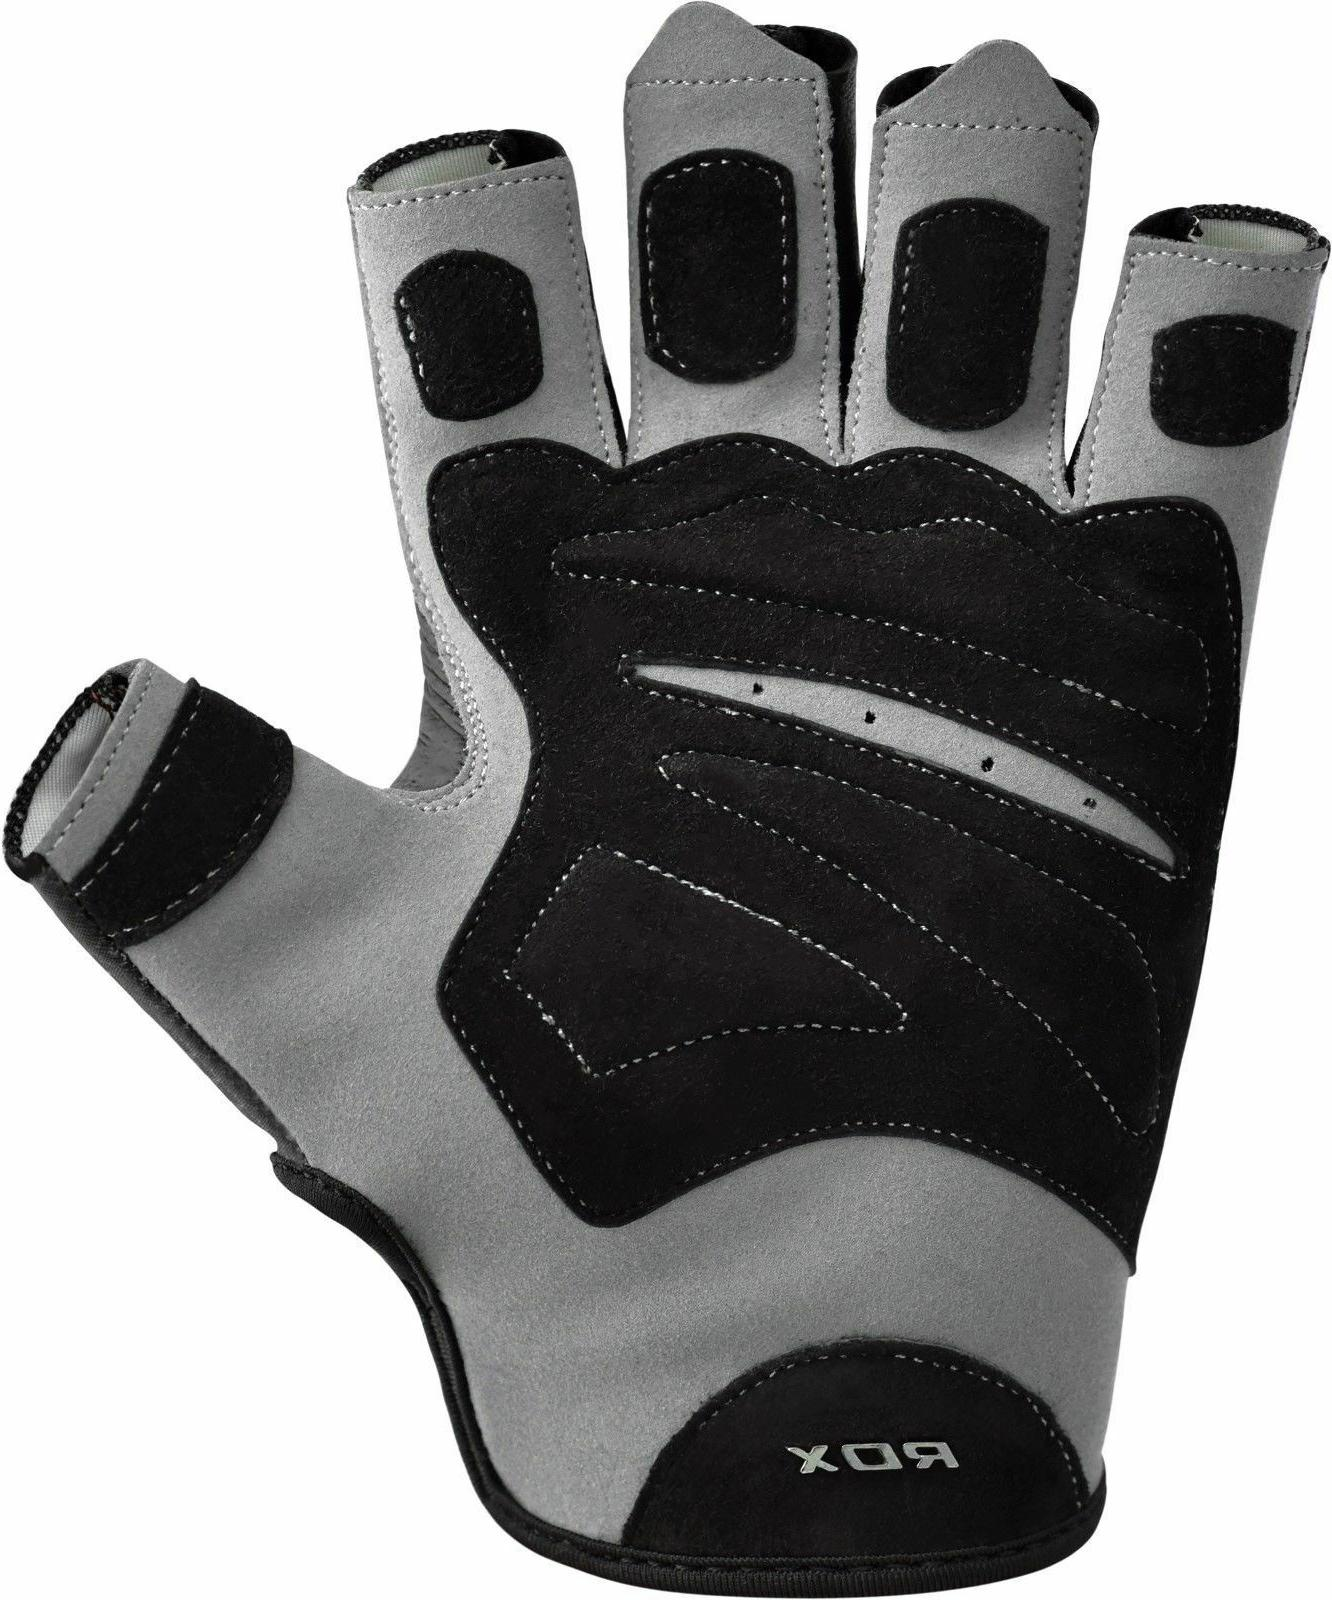 RDX Women Weight Lifting Gloves Workout Gym Exercise Fitness